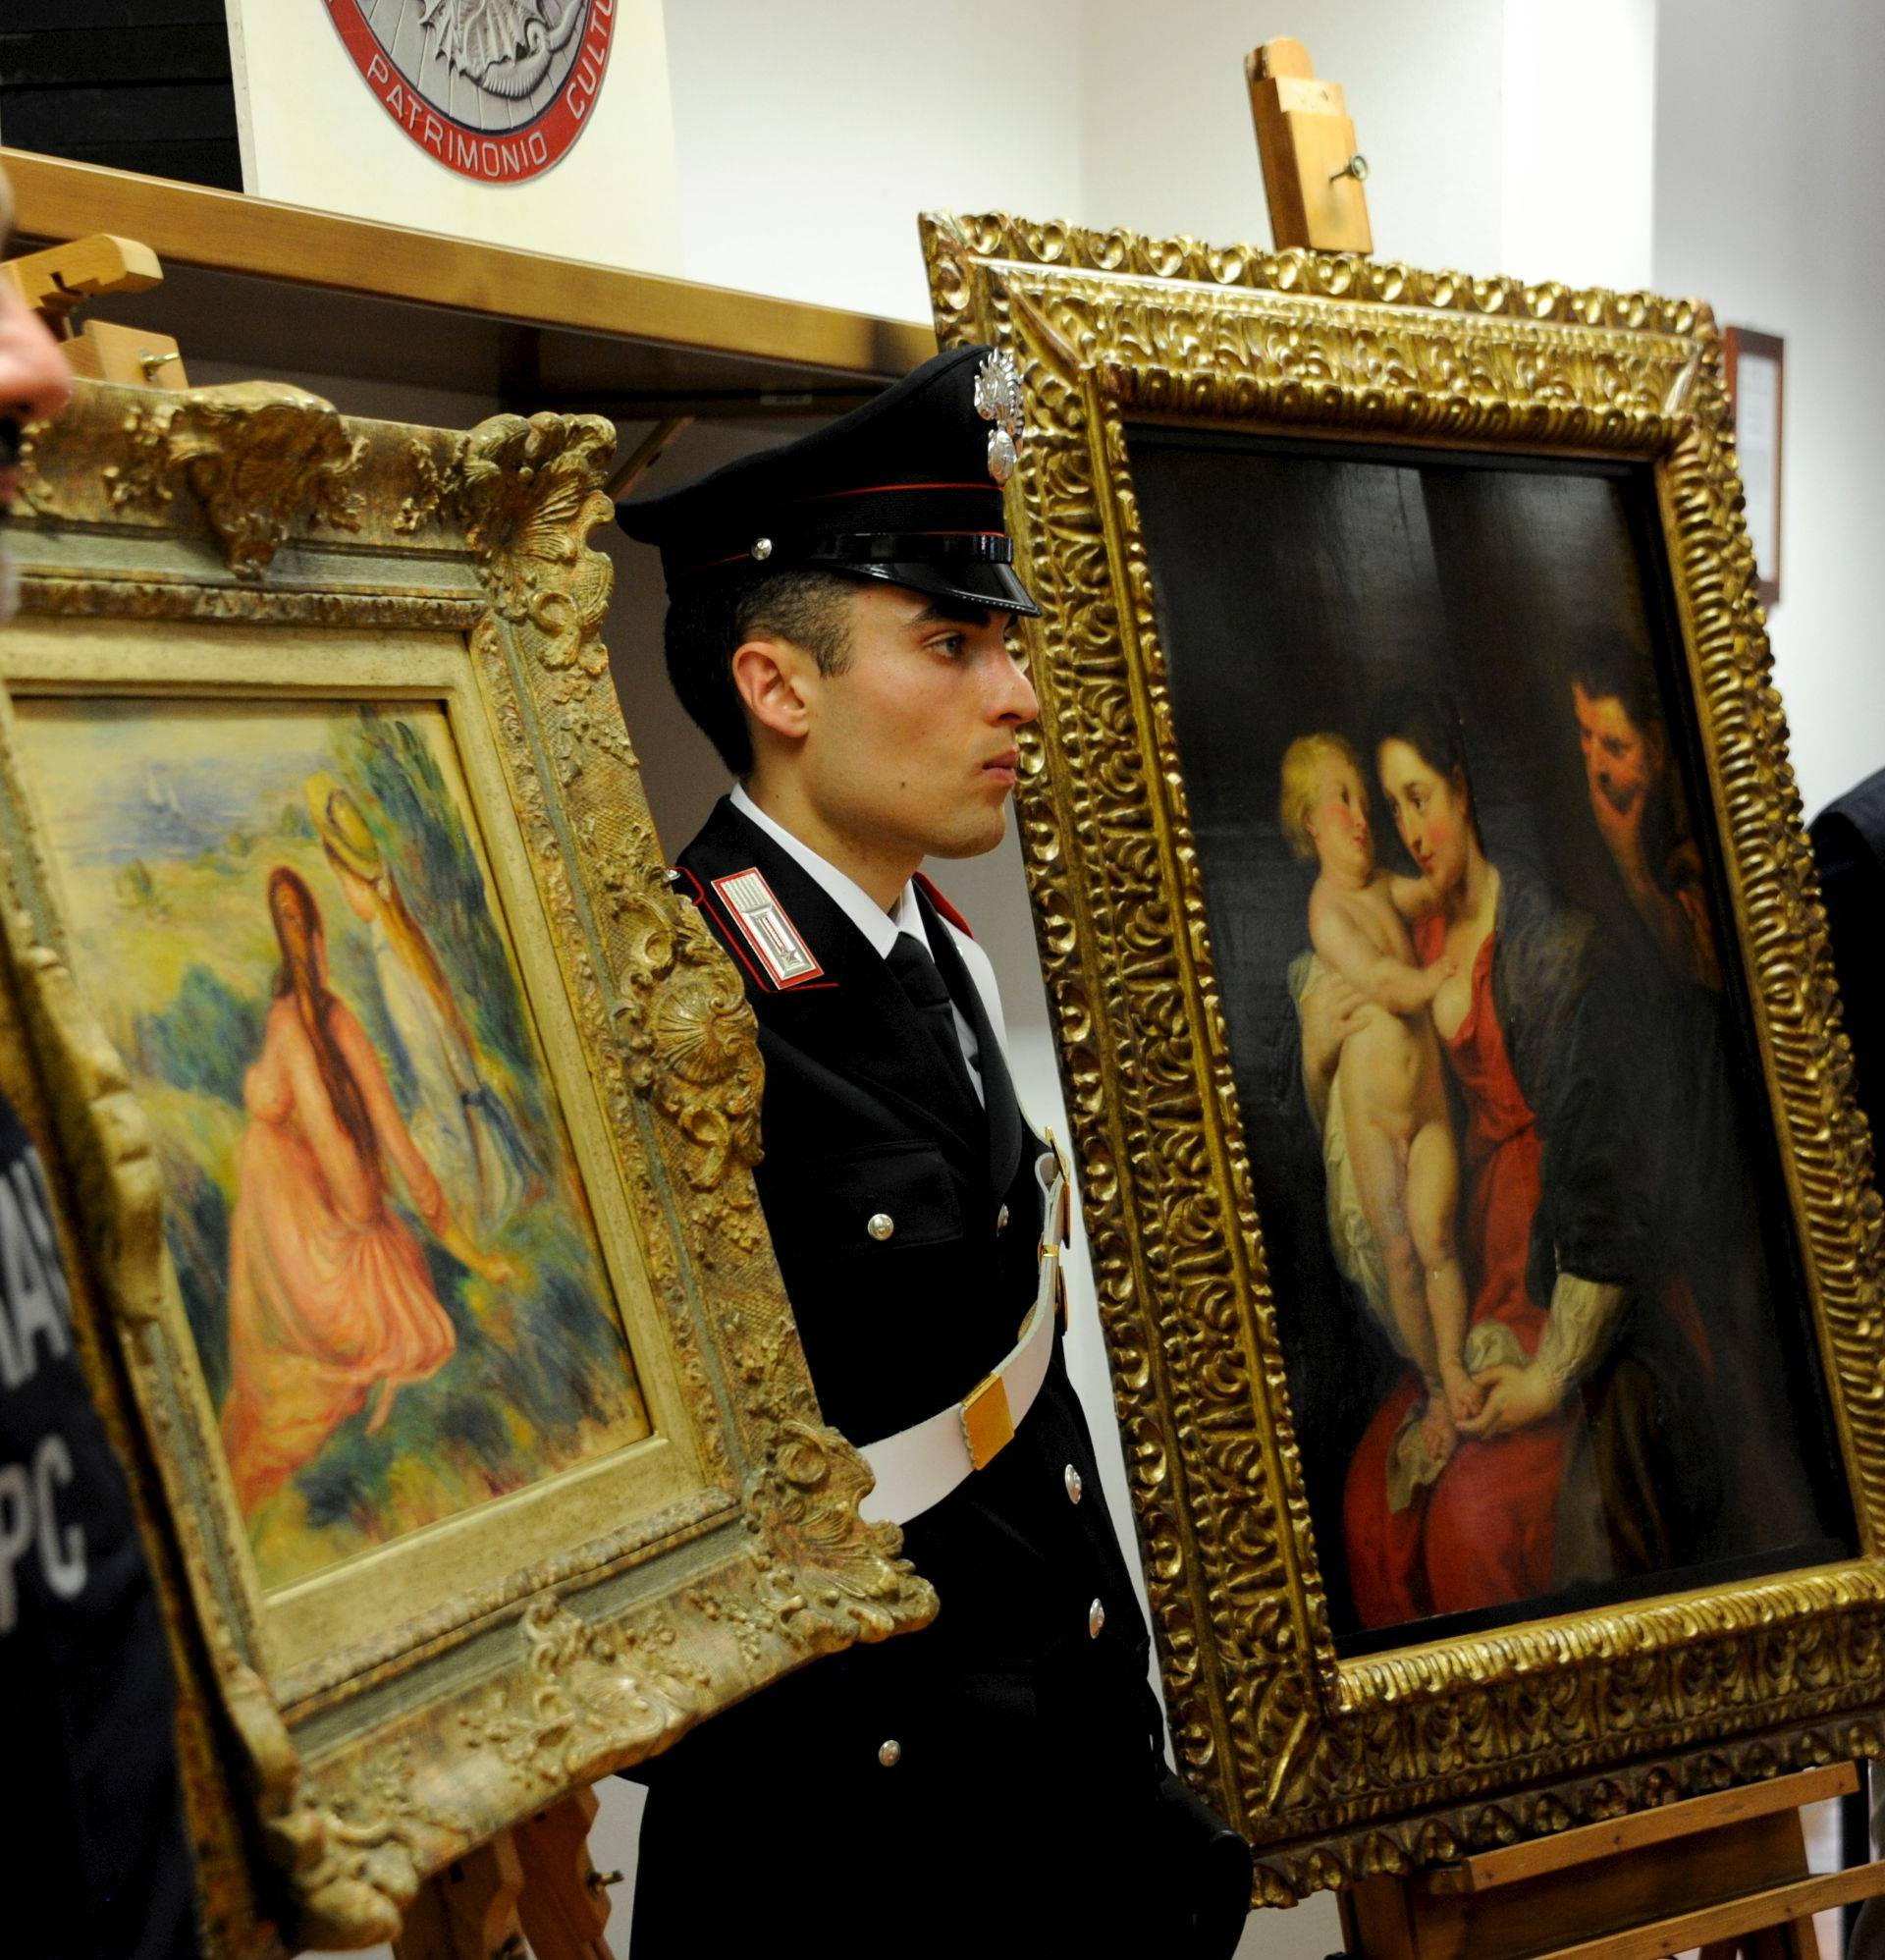 Monza, Recovered two pictures of Rubens and Renoir stolen last year